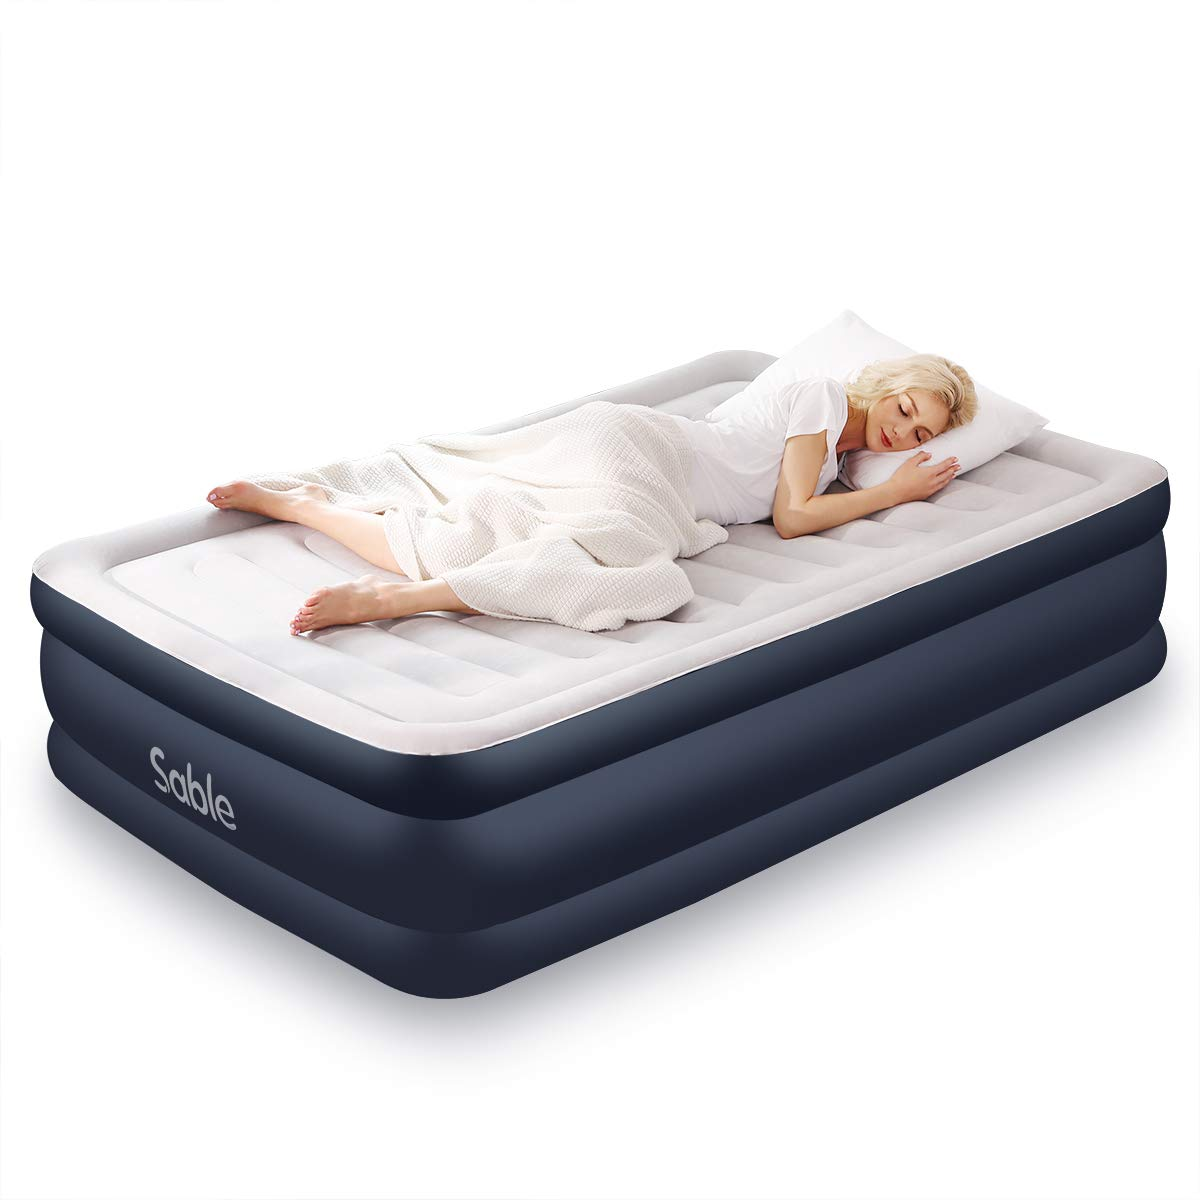 Top 10 Best Air Mattresses